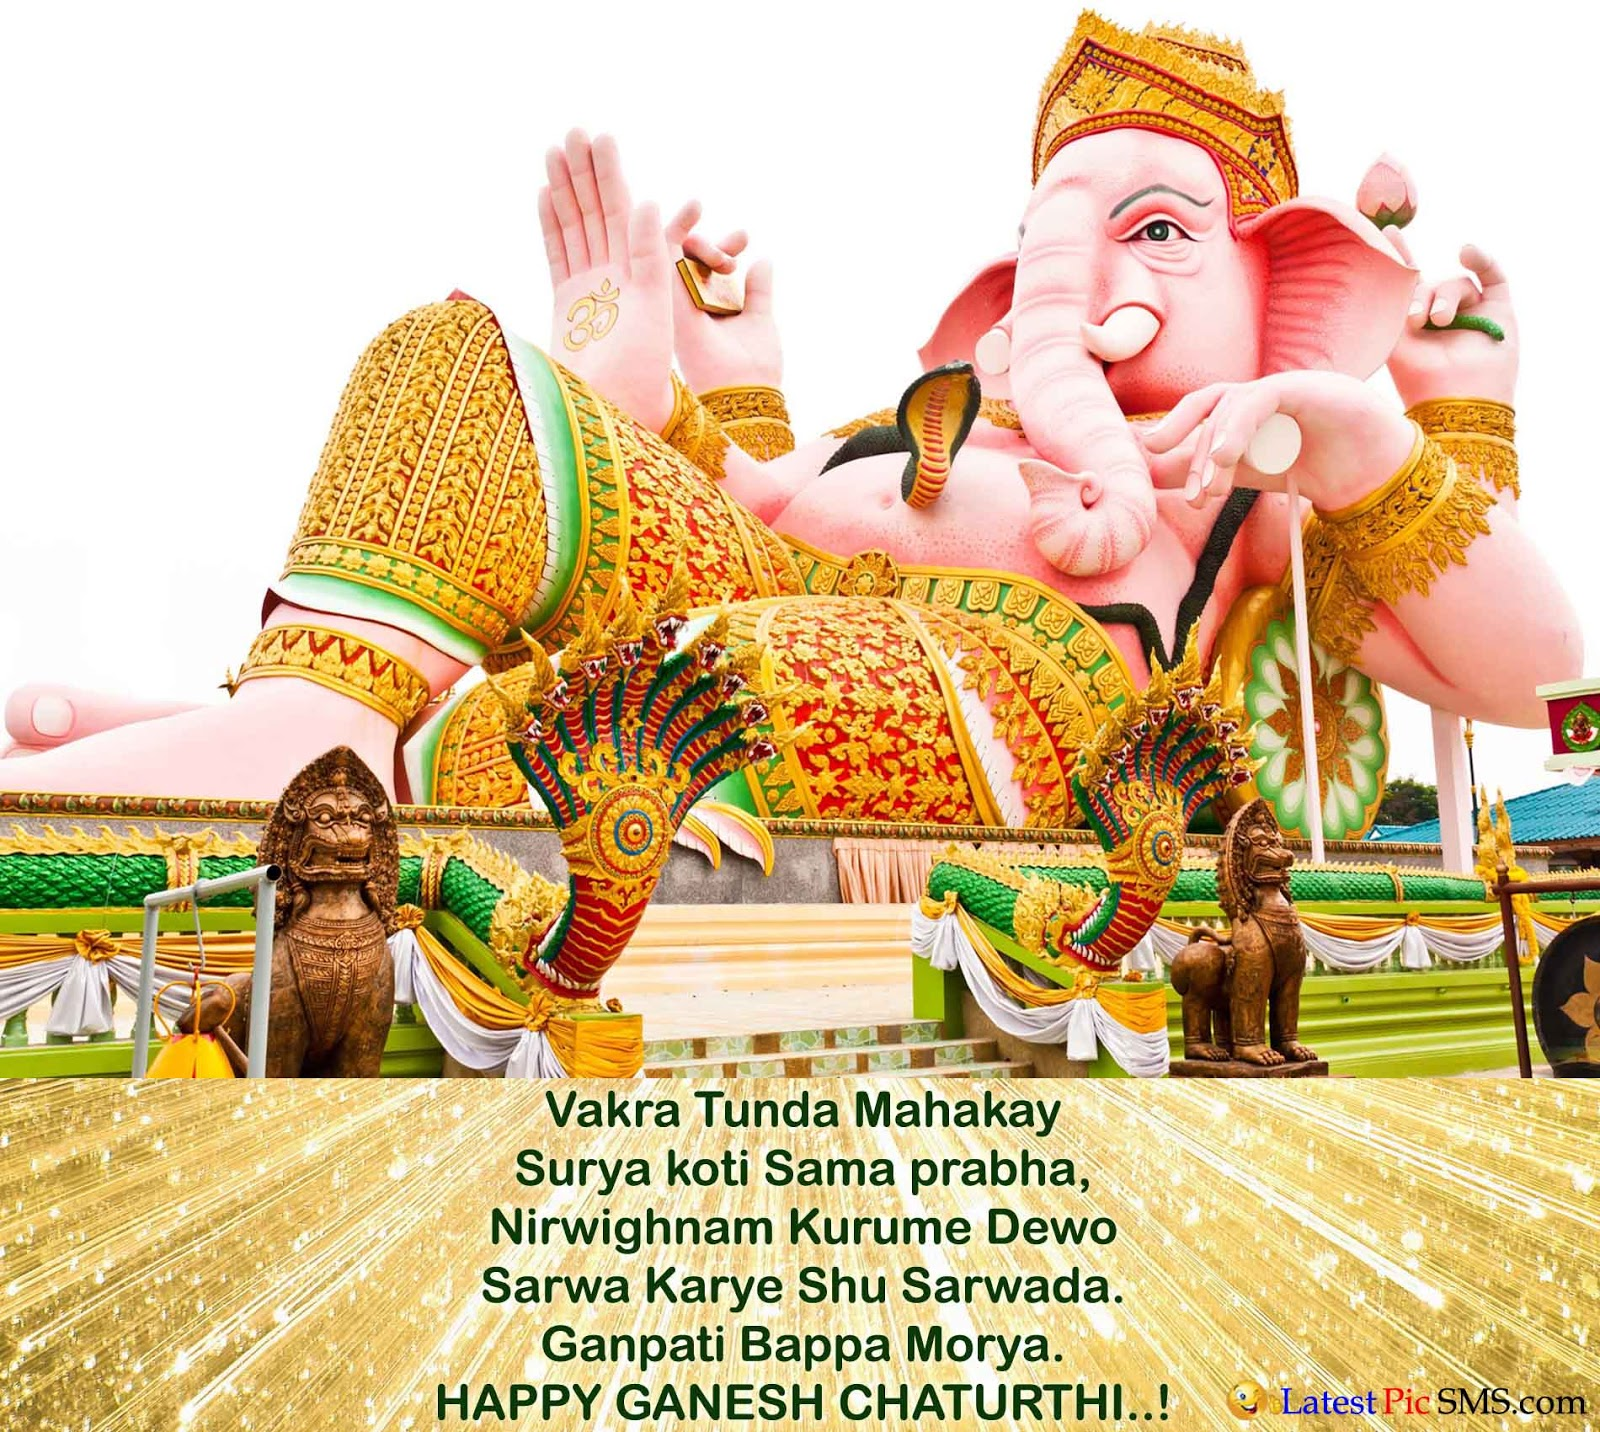 Vakra tund ganesha shlok mantra image hd wallpaper quotes - SMS of The Day in English with Pictures for Whatsapp & Facebook